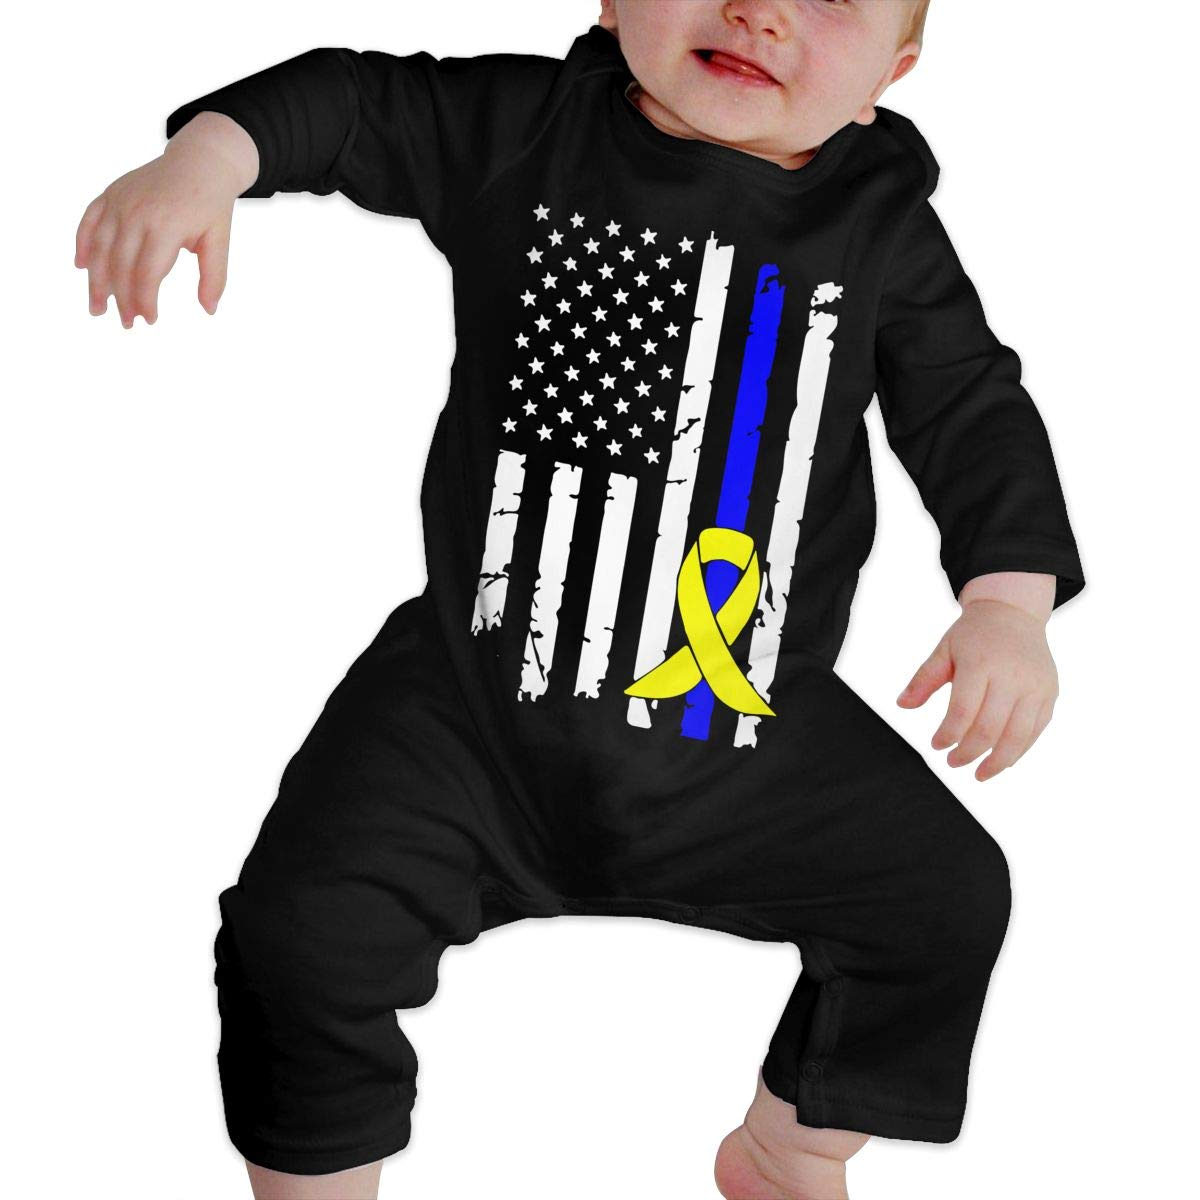 A1BY-5US Newborn Baby Boys Girls Long Sleeve Down Syndrome Cancer Awareness USA Flag Jumpsuit Romper One-Piece Romper Clothes